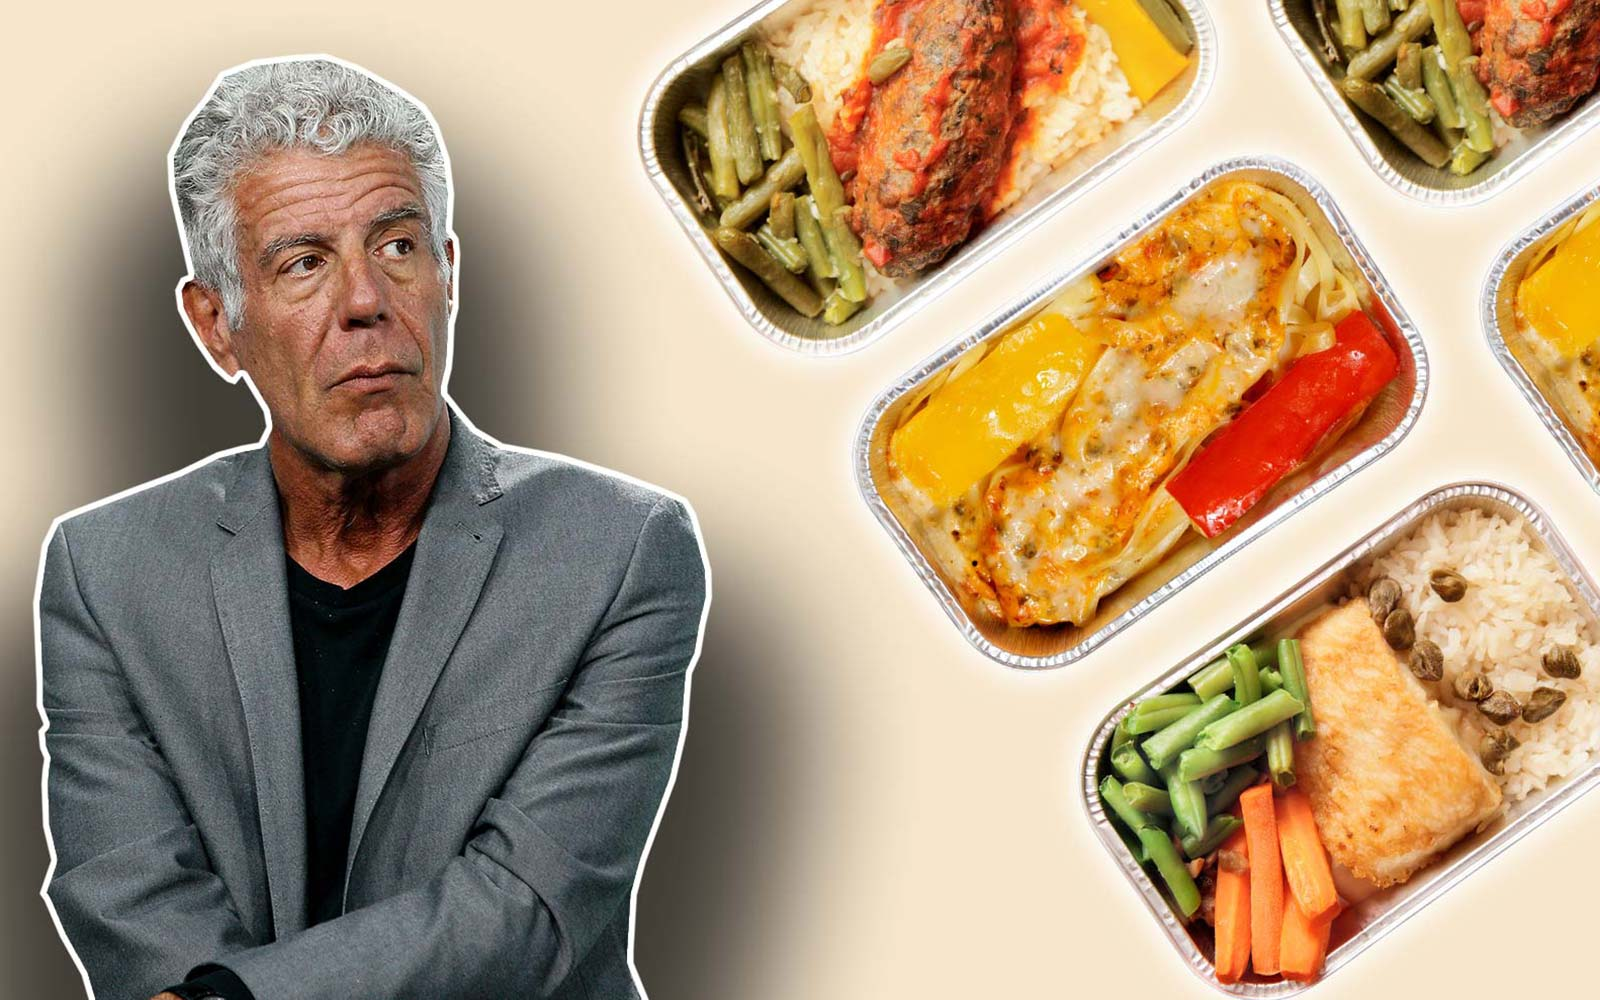 What Anthony Bourdain Orders on a Plane